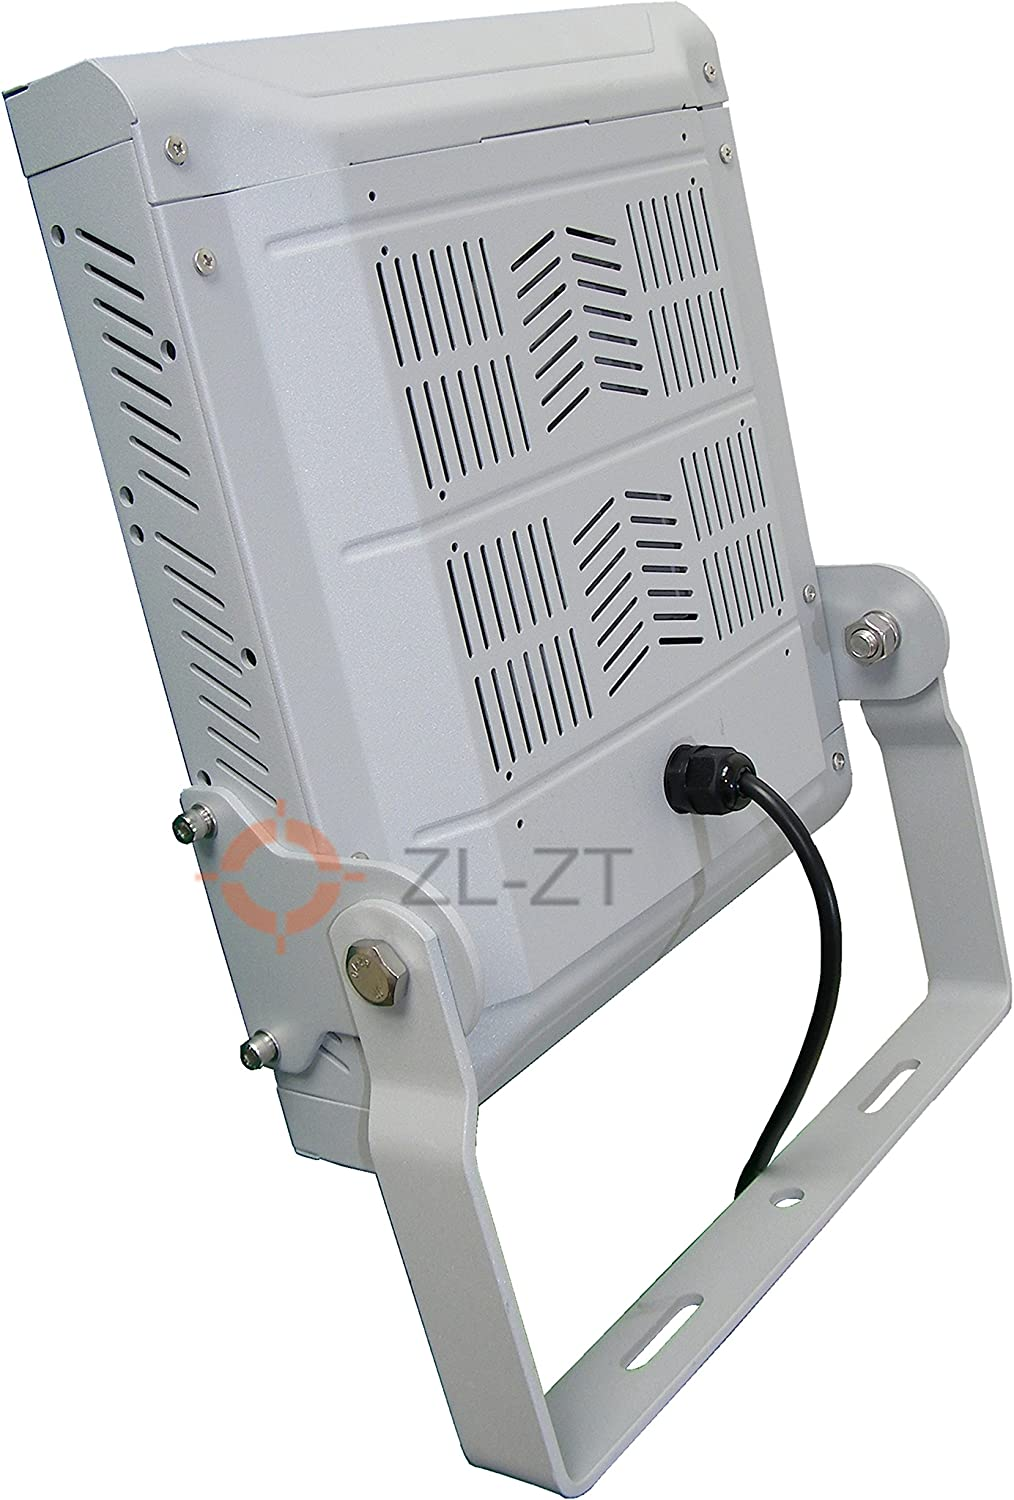 200W Customizable Emit Angle /& CCT Modular Powerful LED Fill Spotlight for High Speed Railway Train Wagon Code Number Recognition Lighting